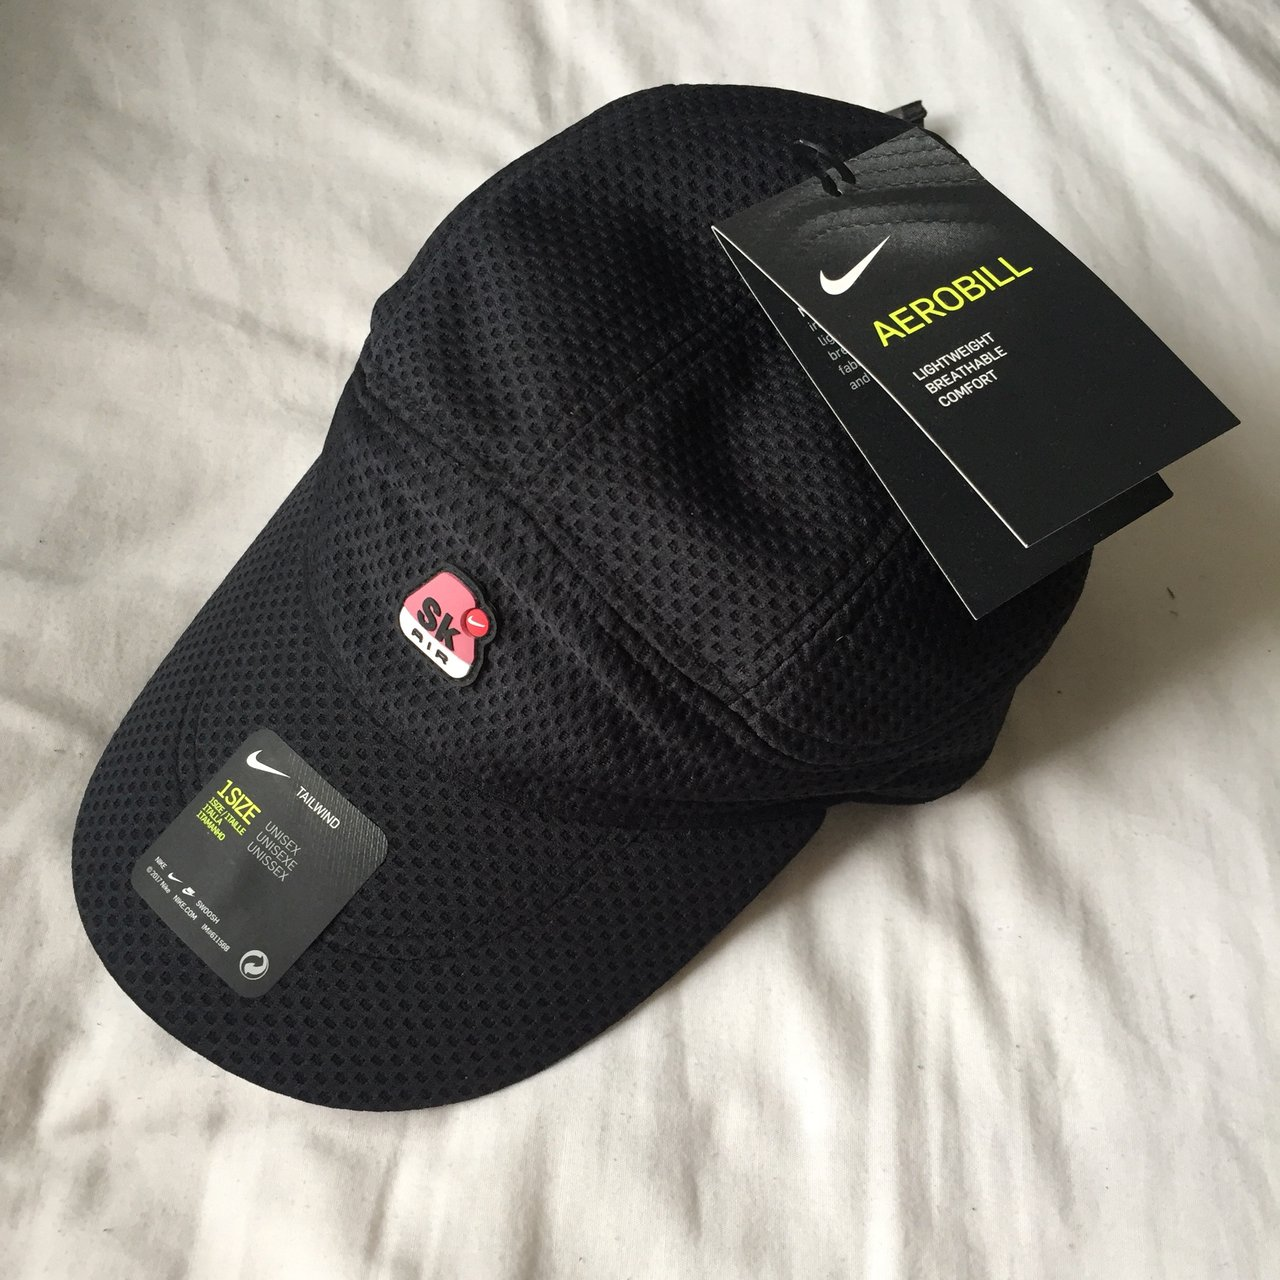 Skepta x Nike sk Air cap • only 250 of these were made and . - Depop 55eb6cb7218